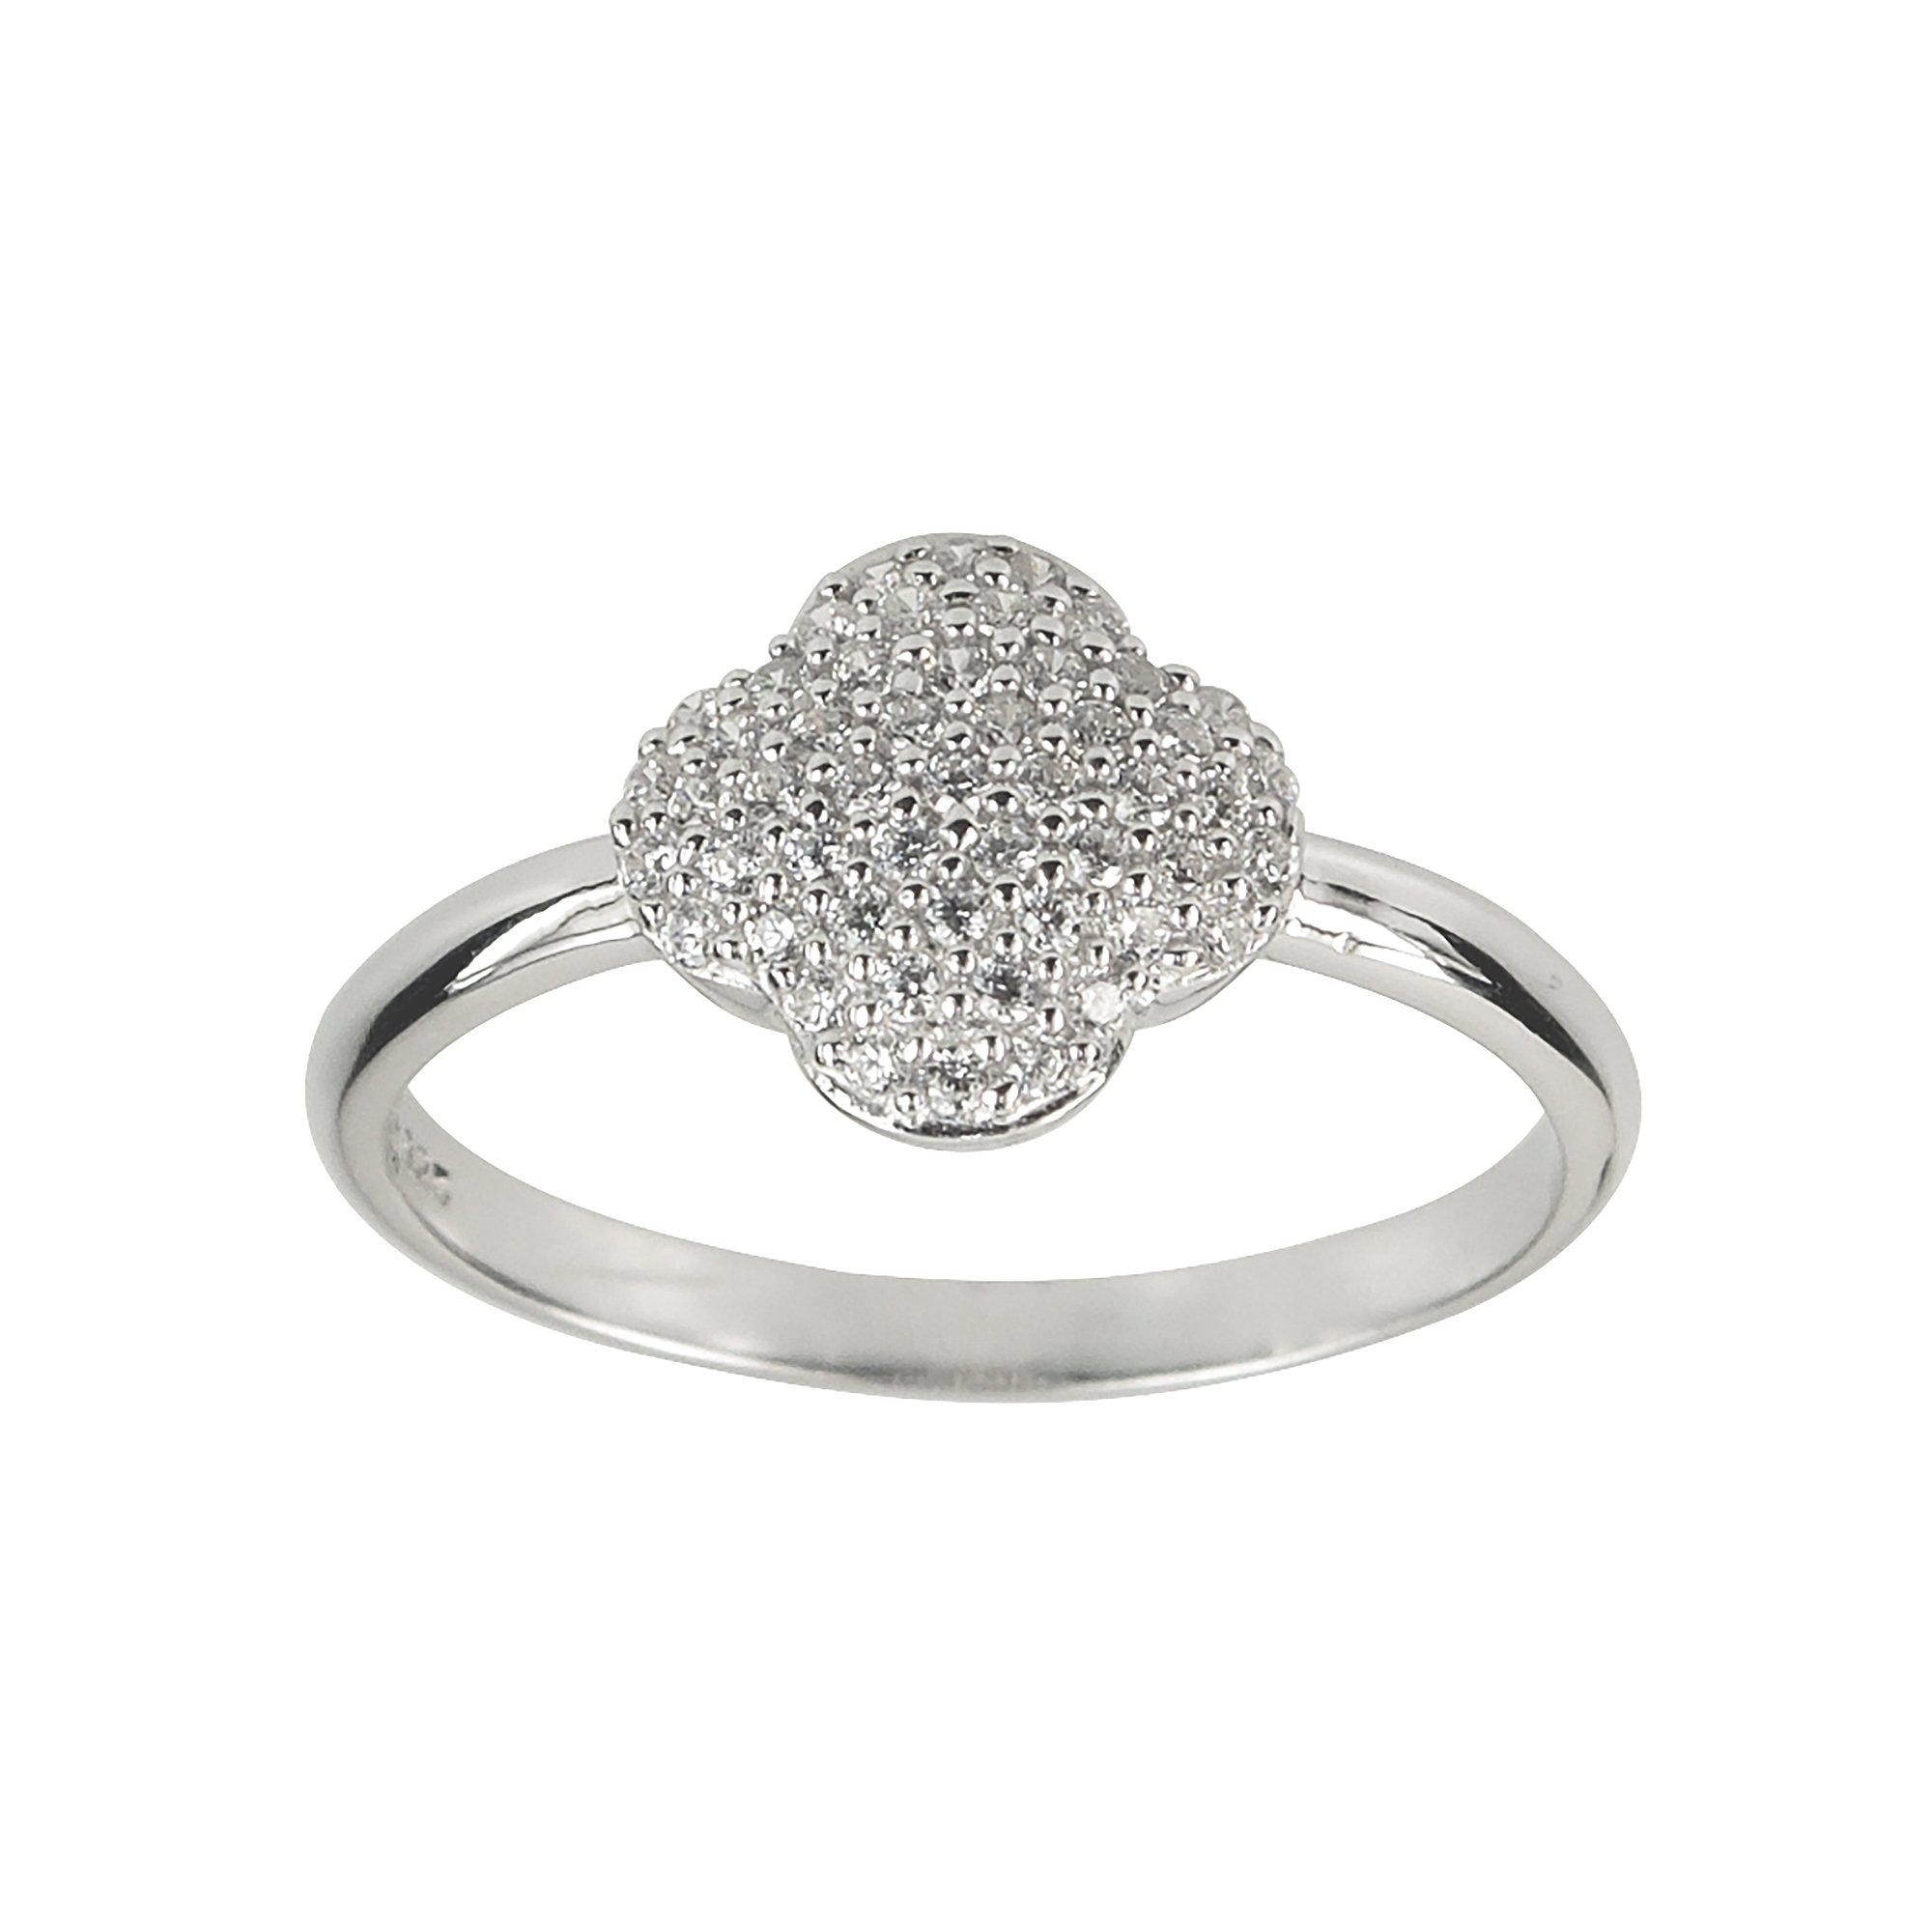 Aura by TJM Sterling Silver Micropave 0.20 cts White CZ Scallop Ring